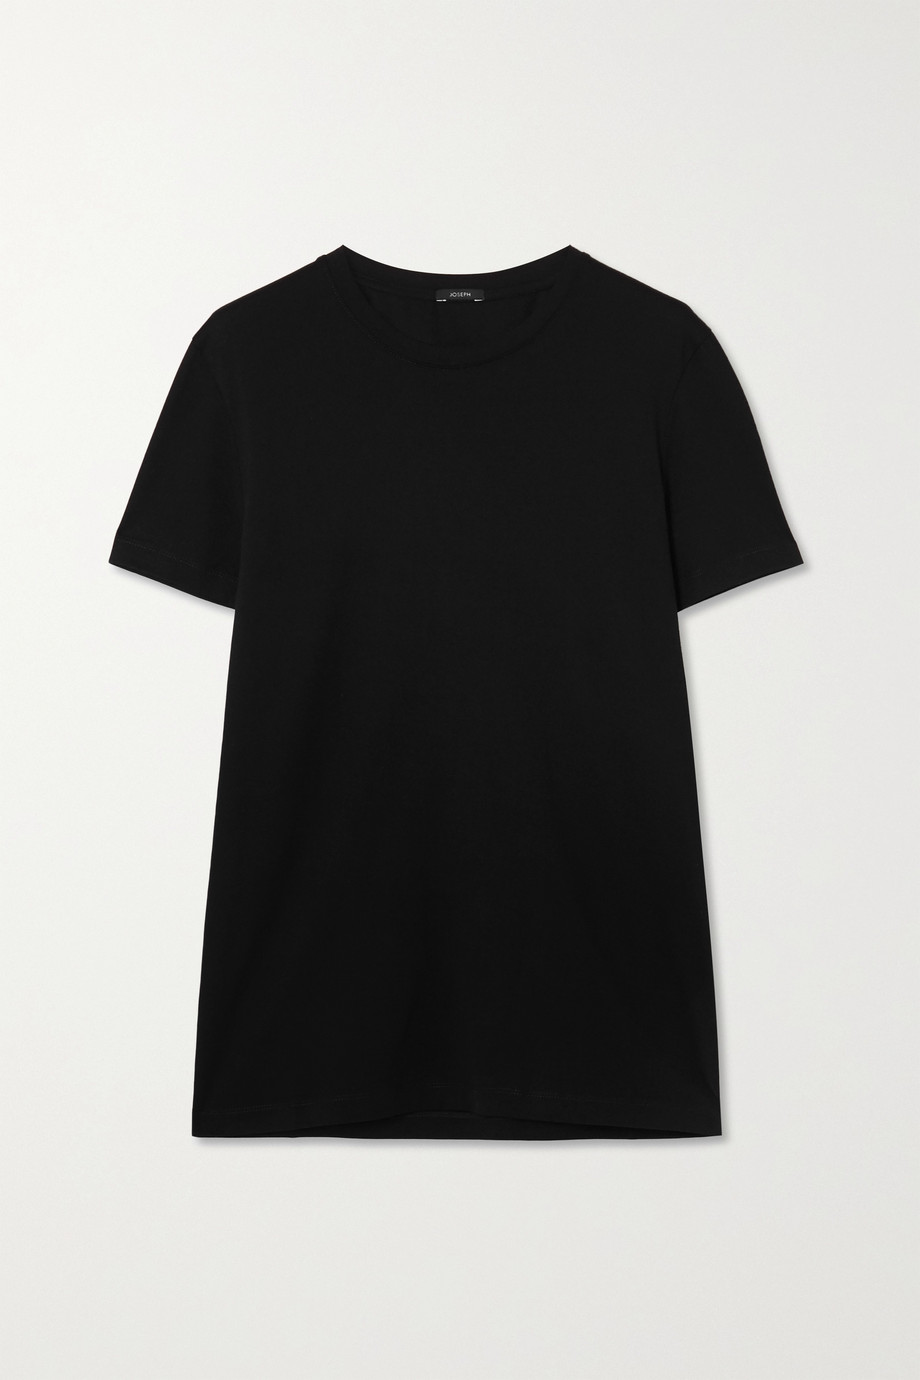 Joseph Cotton-jersey T-shirt